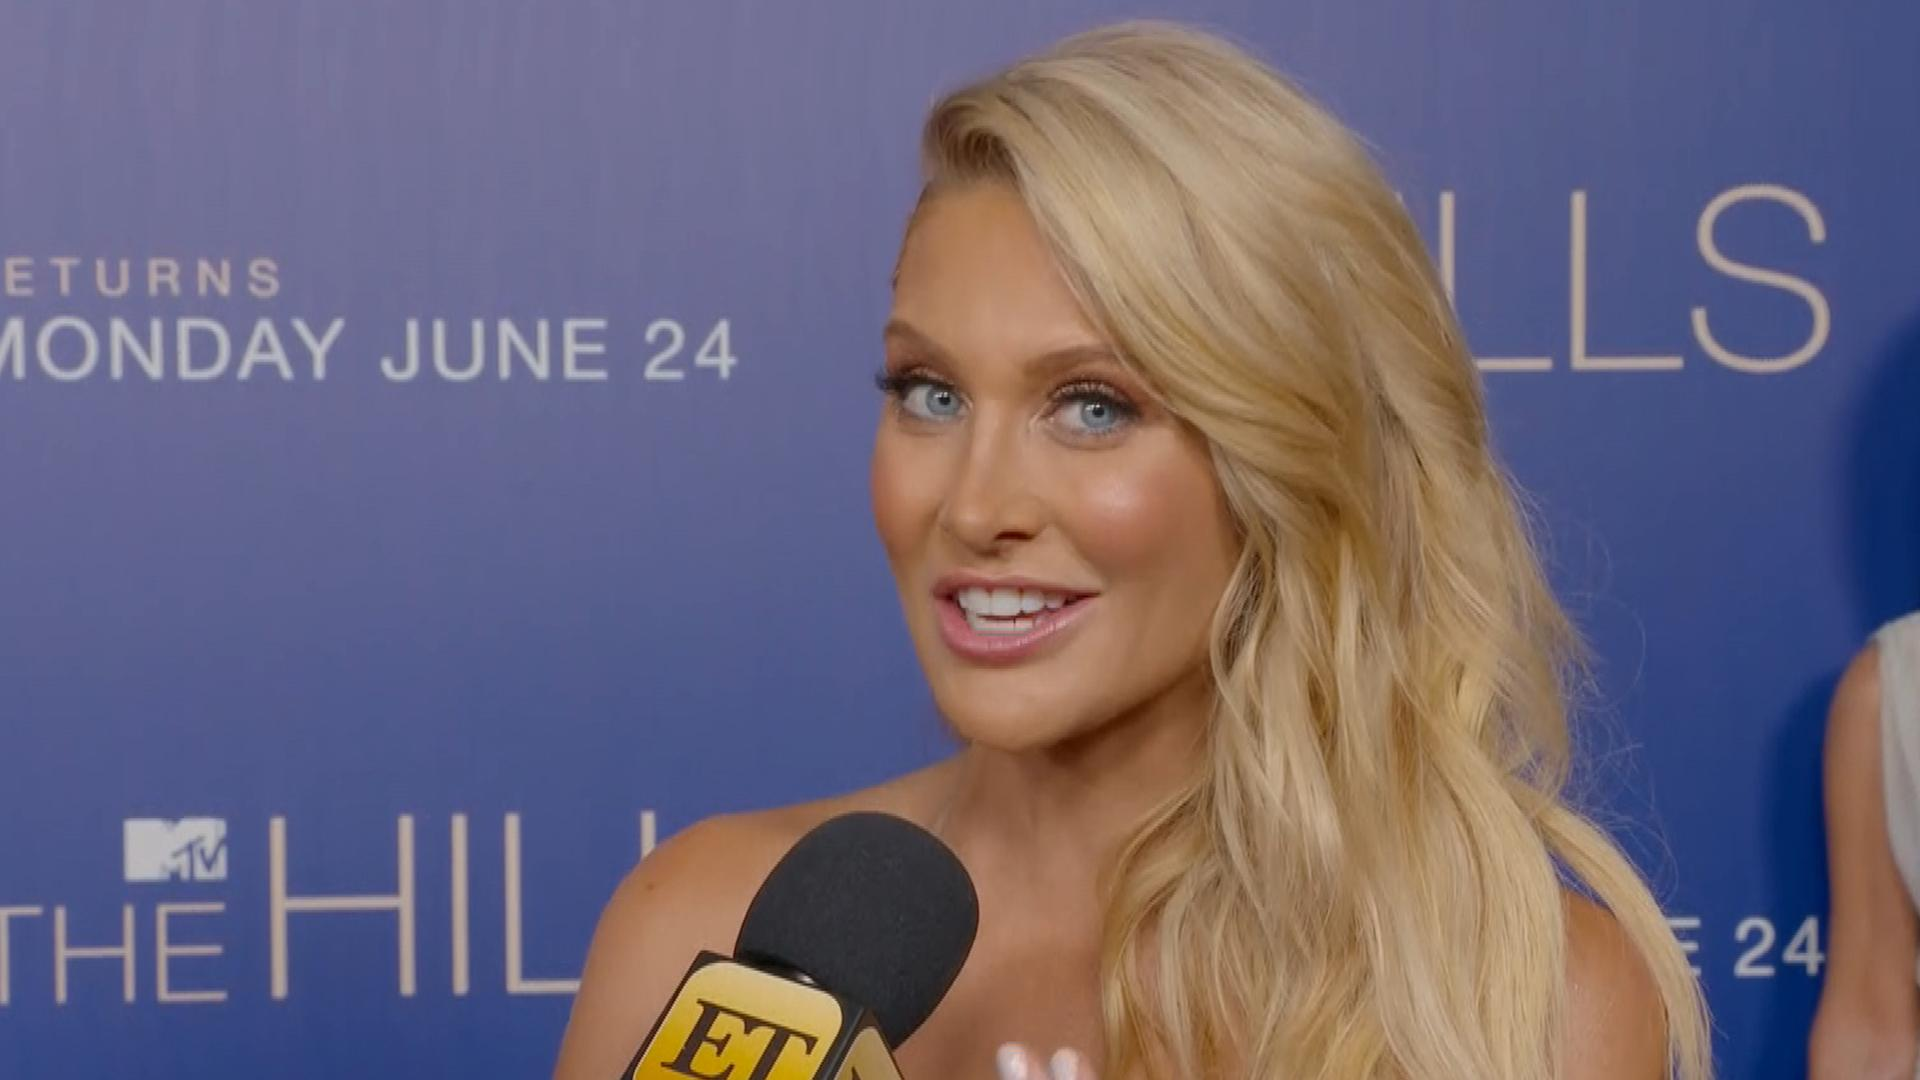 Stephanie Pratt Explains Why She Has a British Accent on 'The Hills' Reboot (Exclusive)